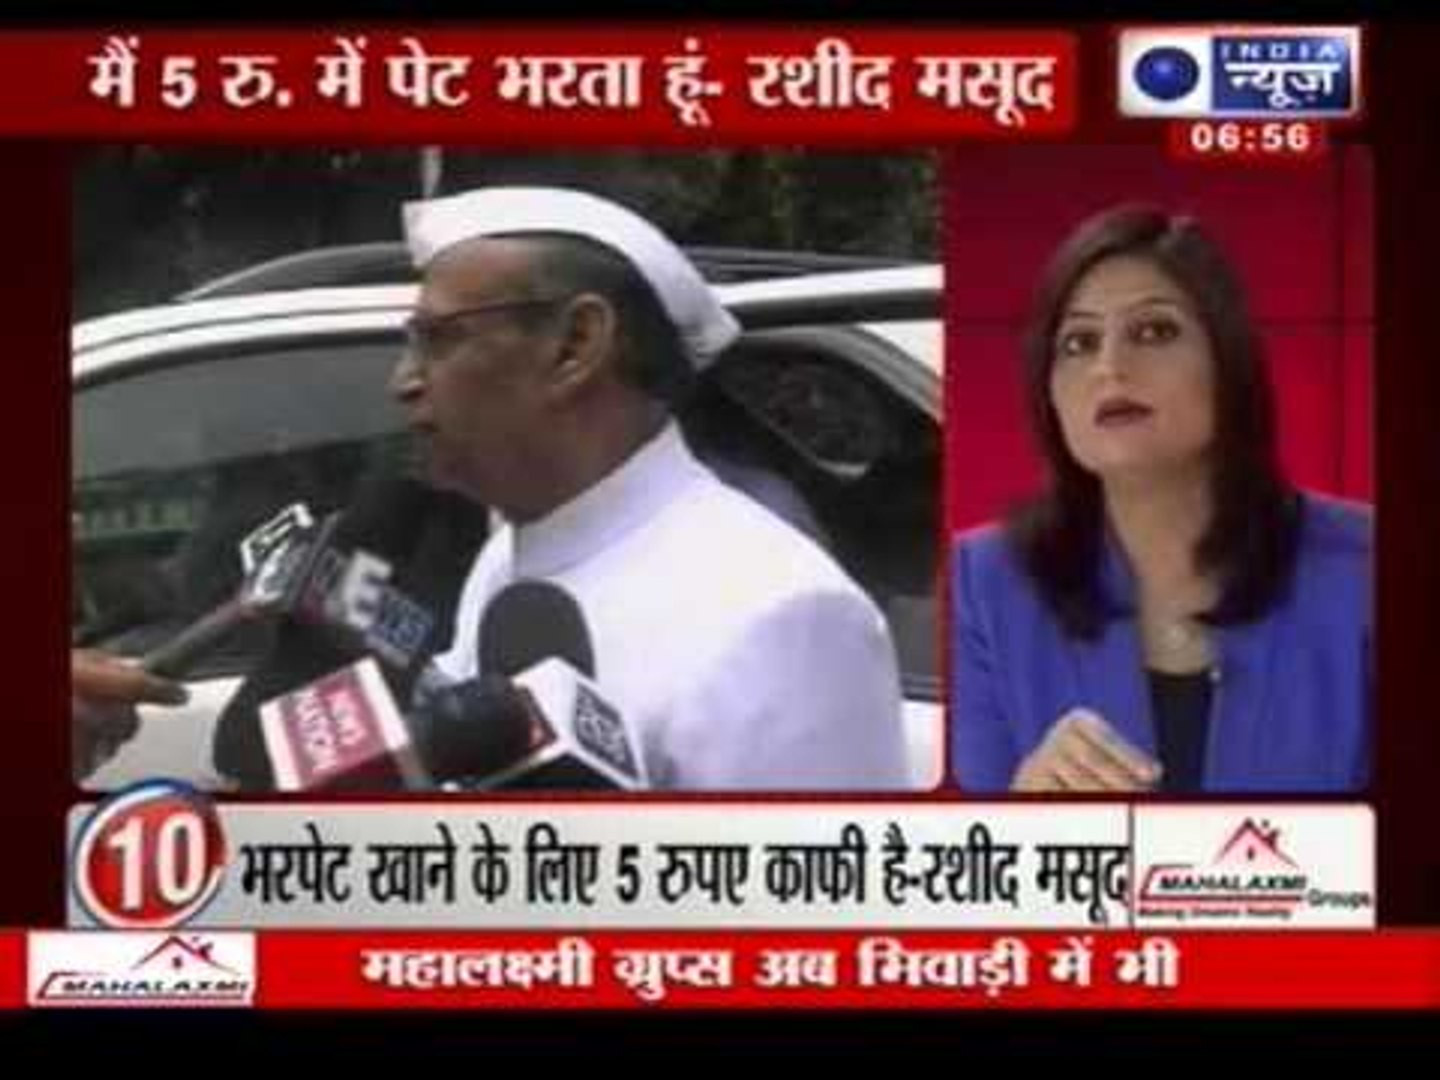 India News: News 25  25th July 2013 7 P.M.